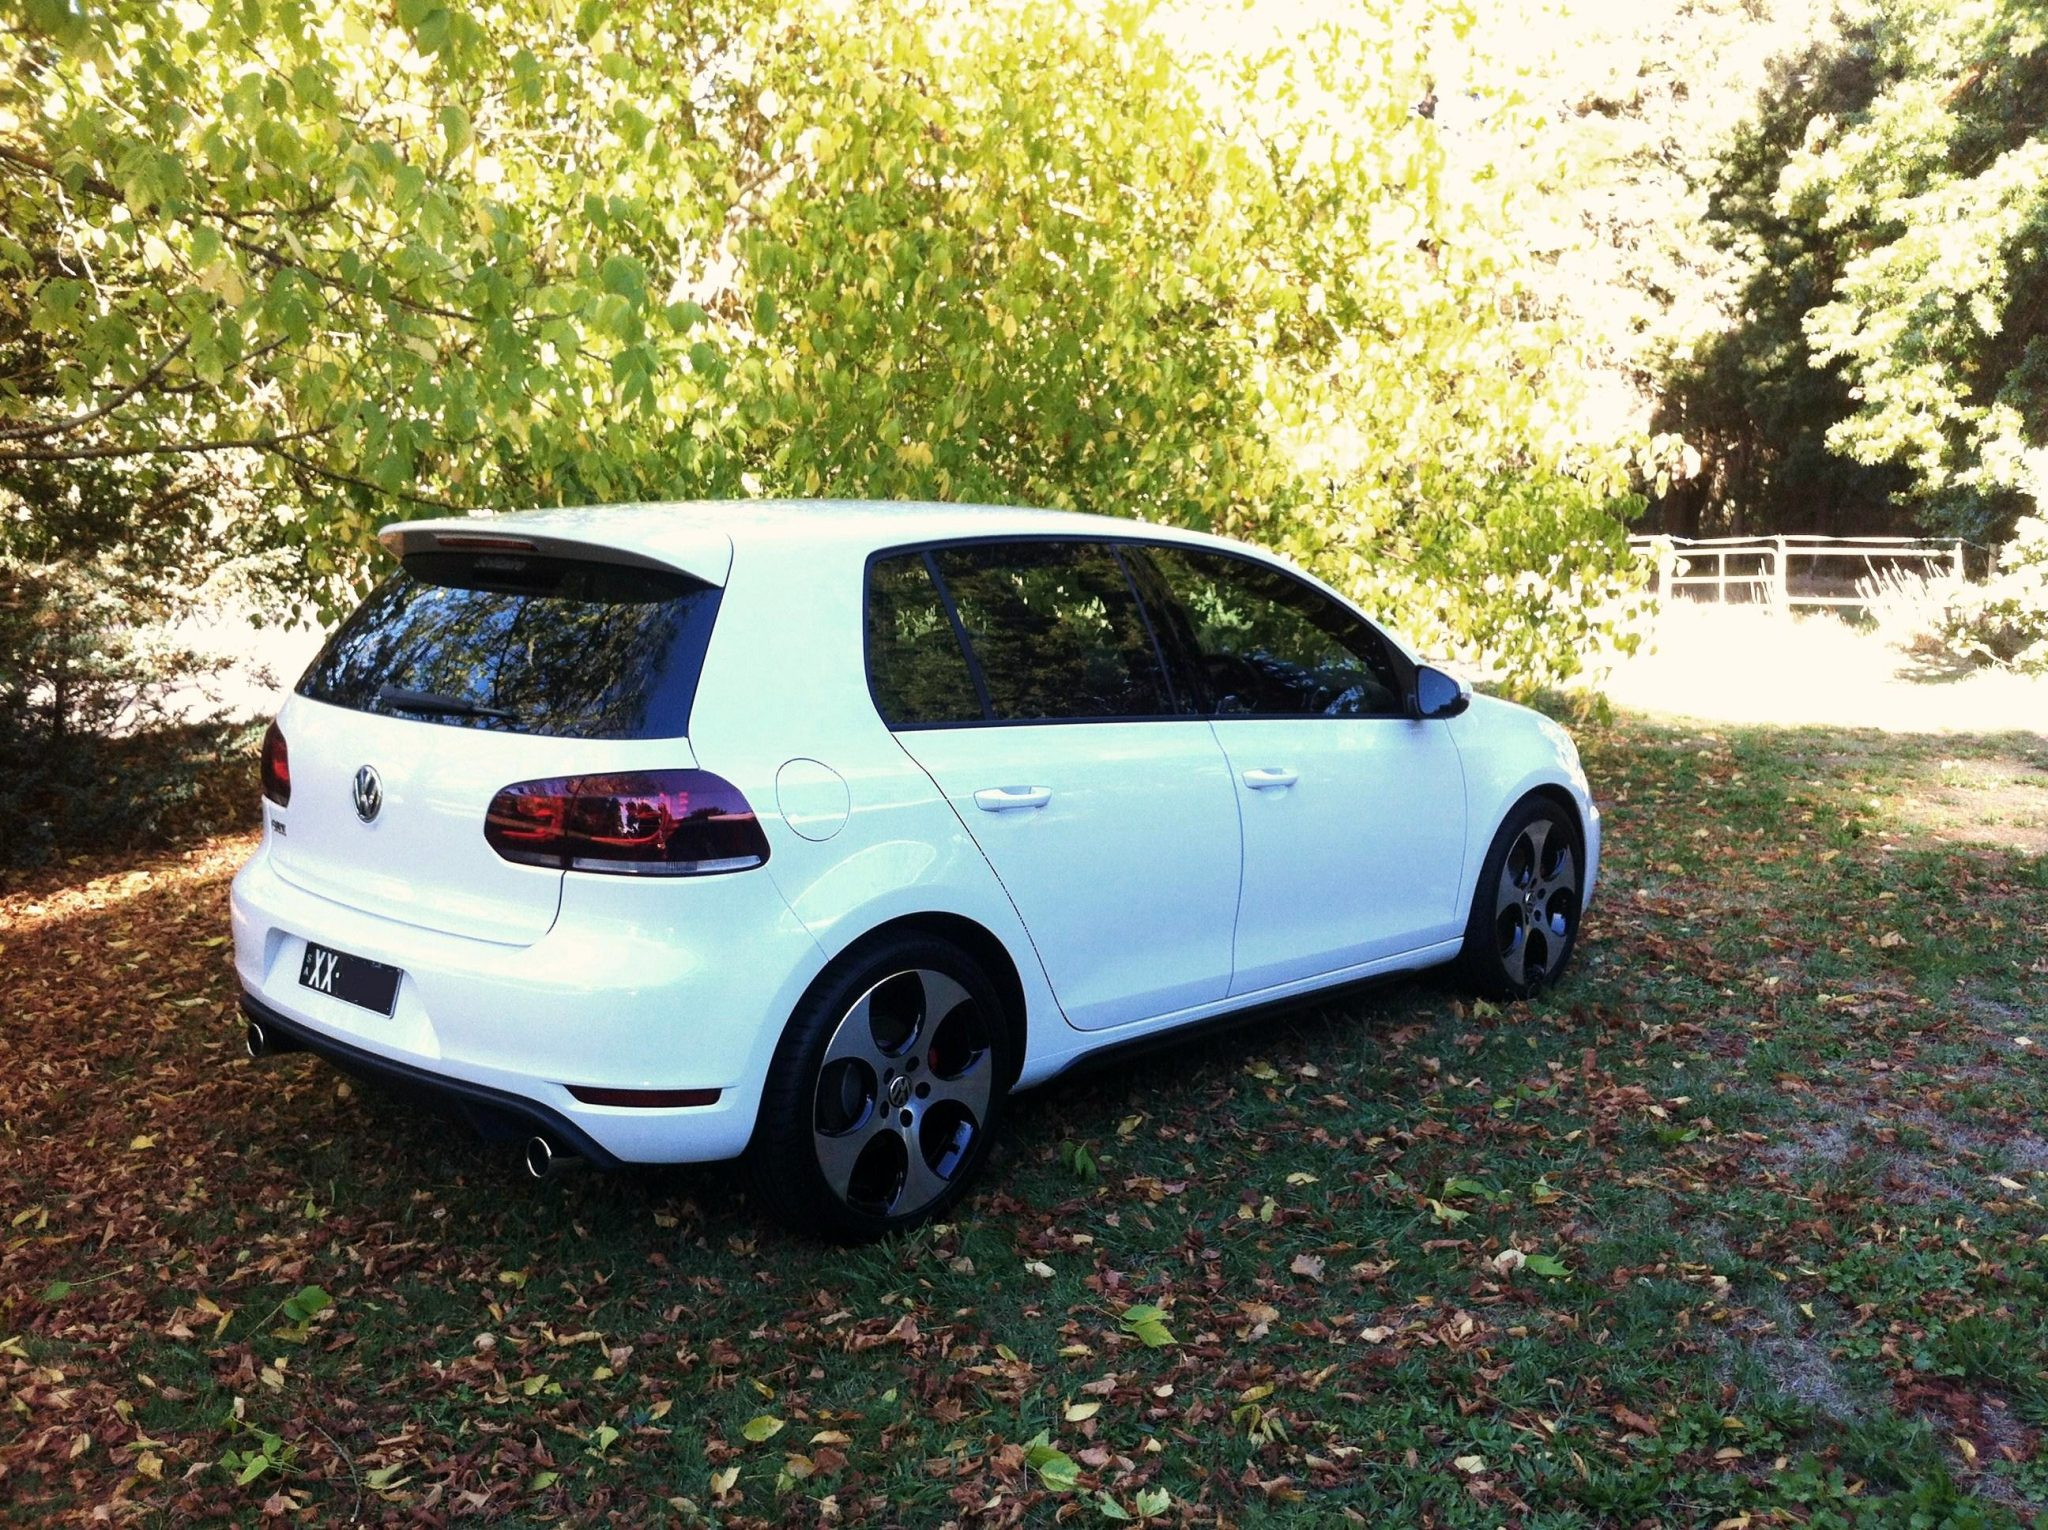 The Gleaming White VW Golf